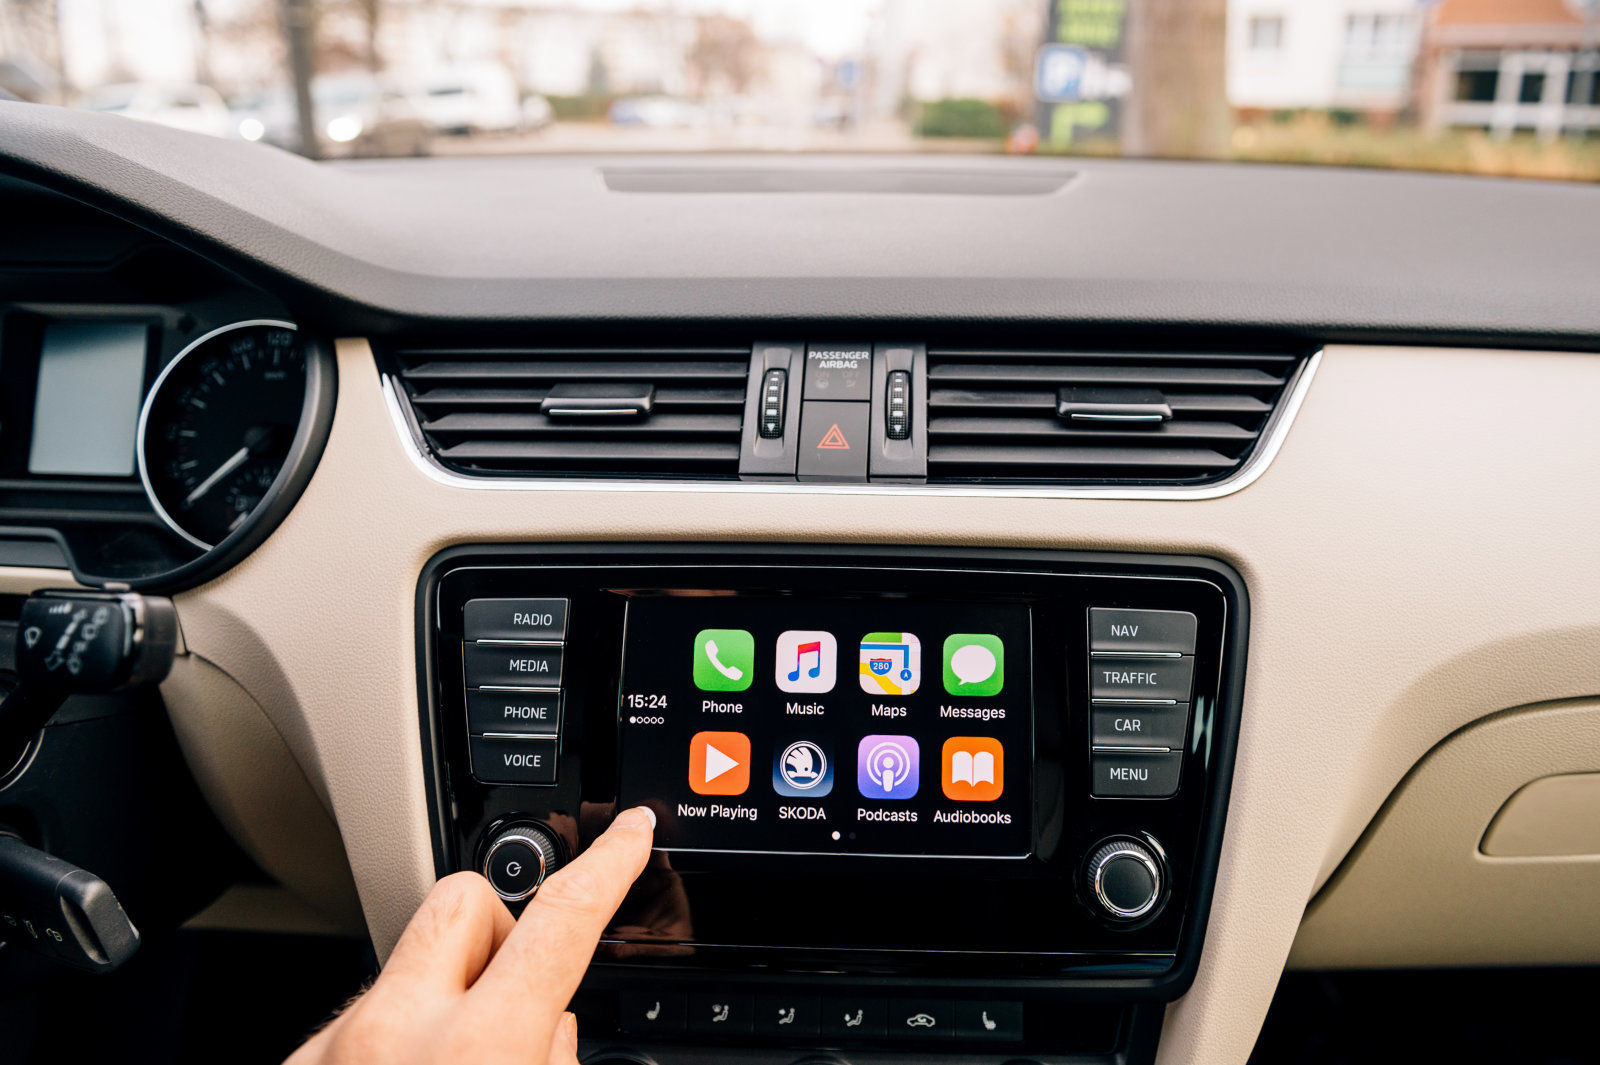 PARIS, FRANCE - DEC 13, 2016: Man pressing home button on the Apple CarPlay main screen in modern car dashboard. CarPlay is an Apple standard that enables a car radio or head unit to be a display and controller for an iPhone. It is available on all iPhone 5 and later with at least iOS 7.1.